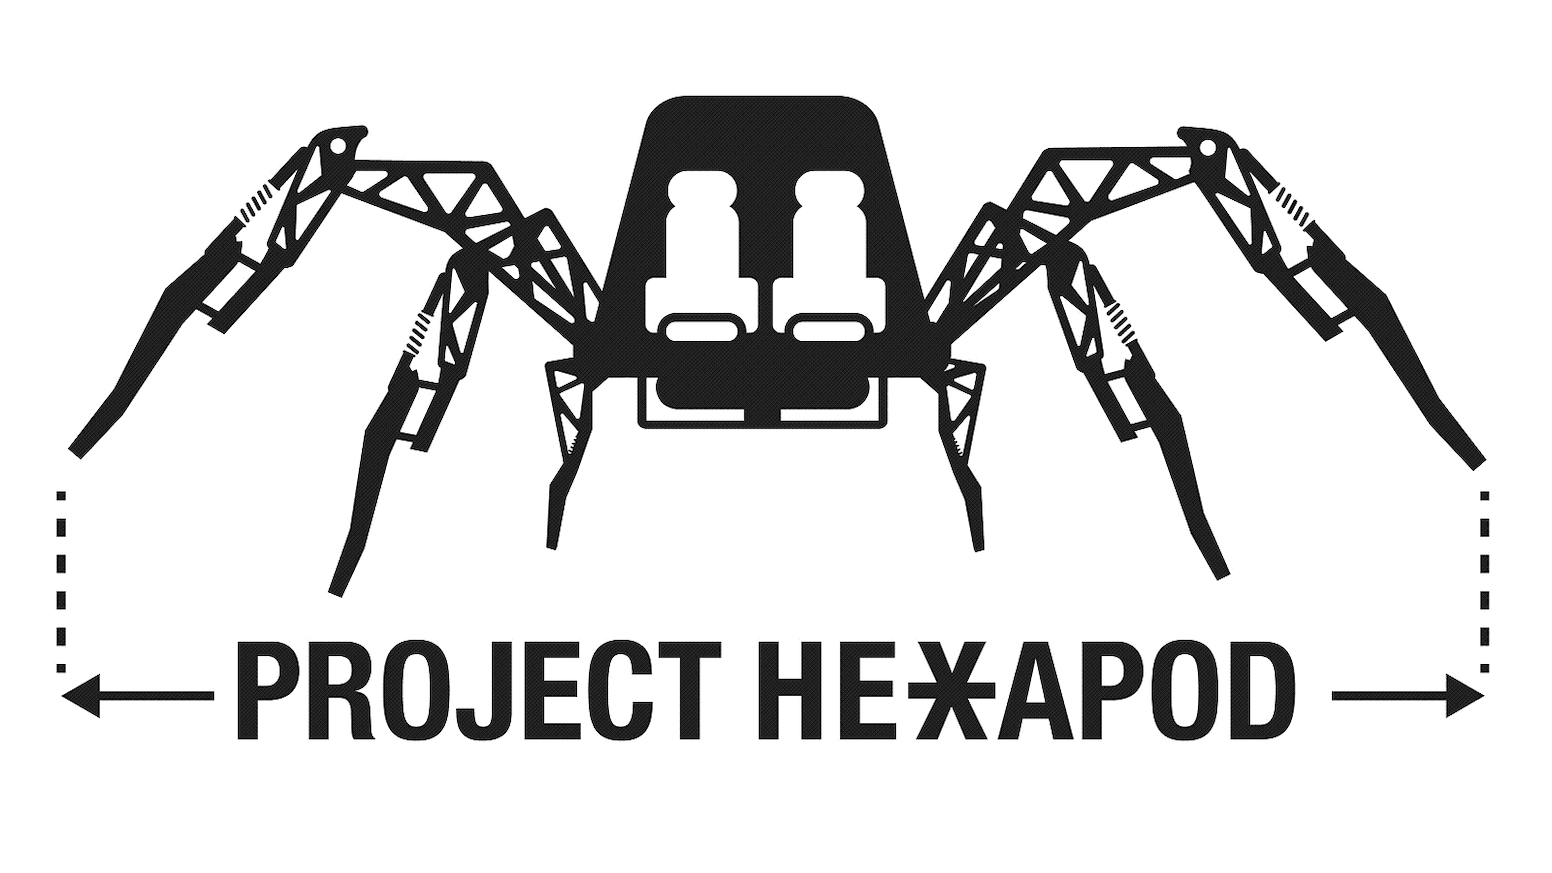 Stompy: The Giant, Rideable Walking Robot by Project Hexapod